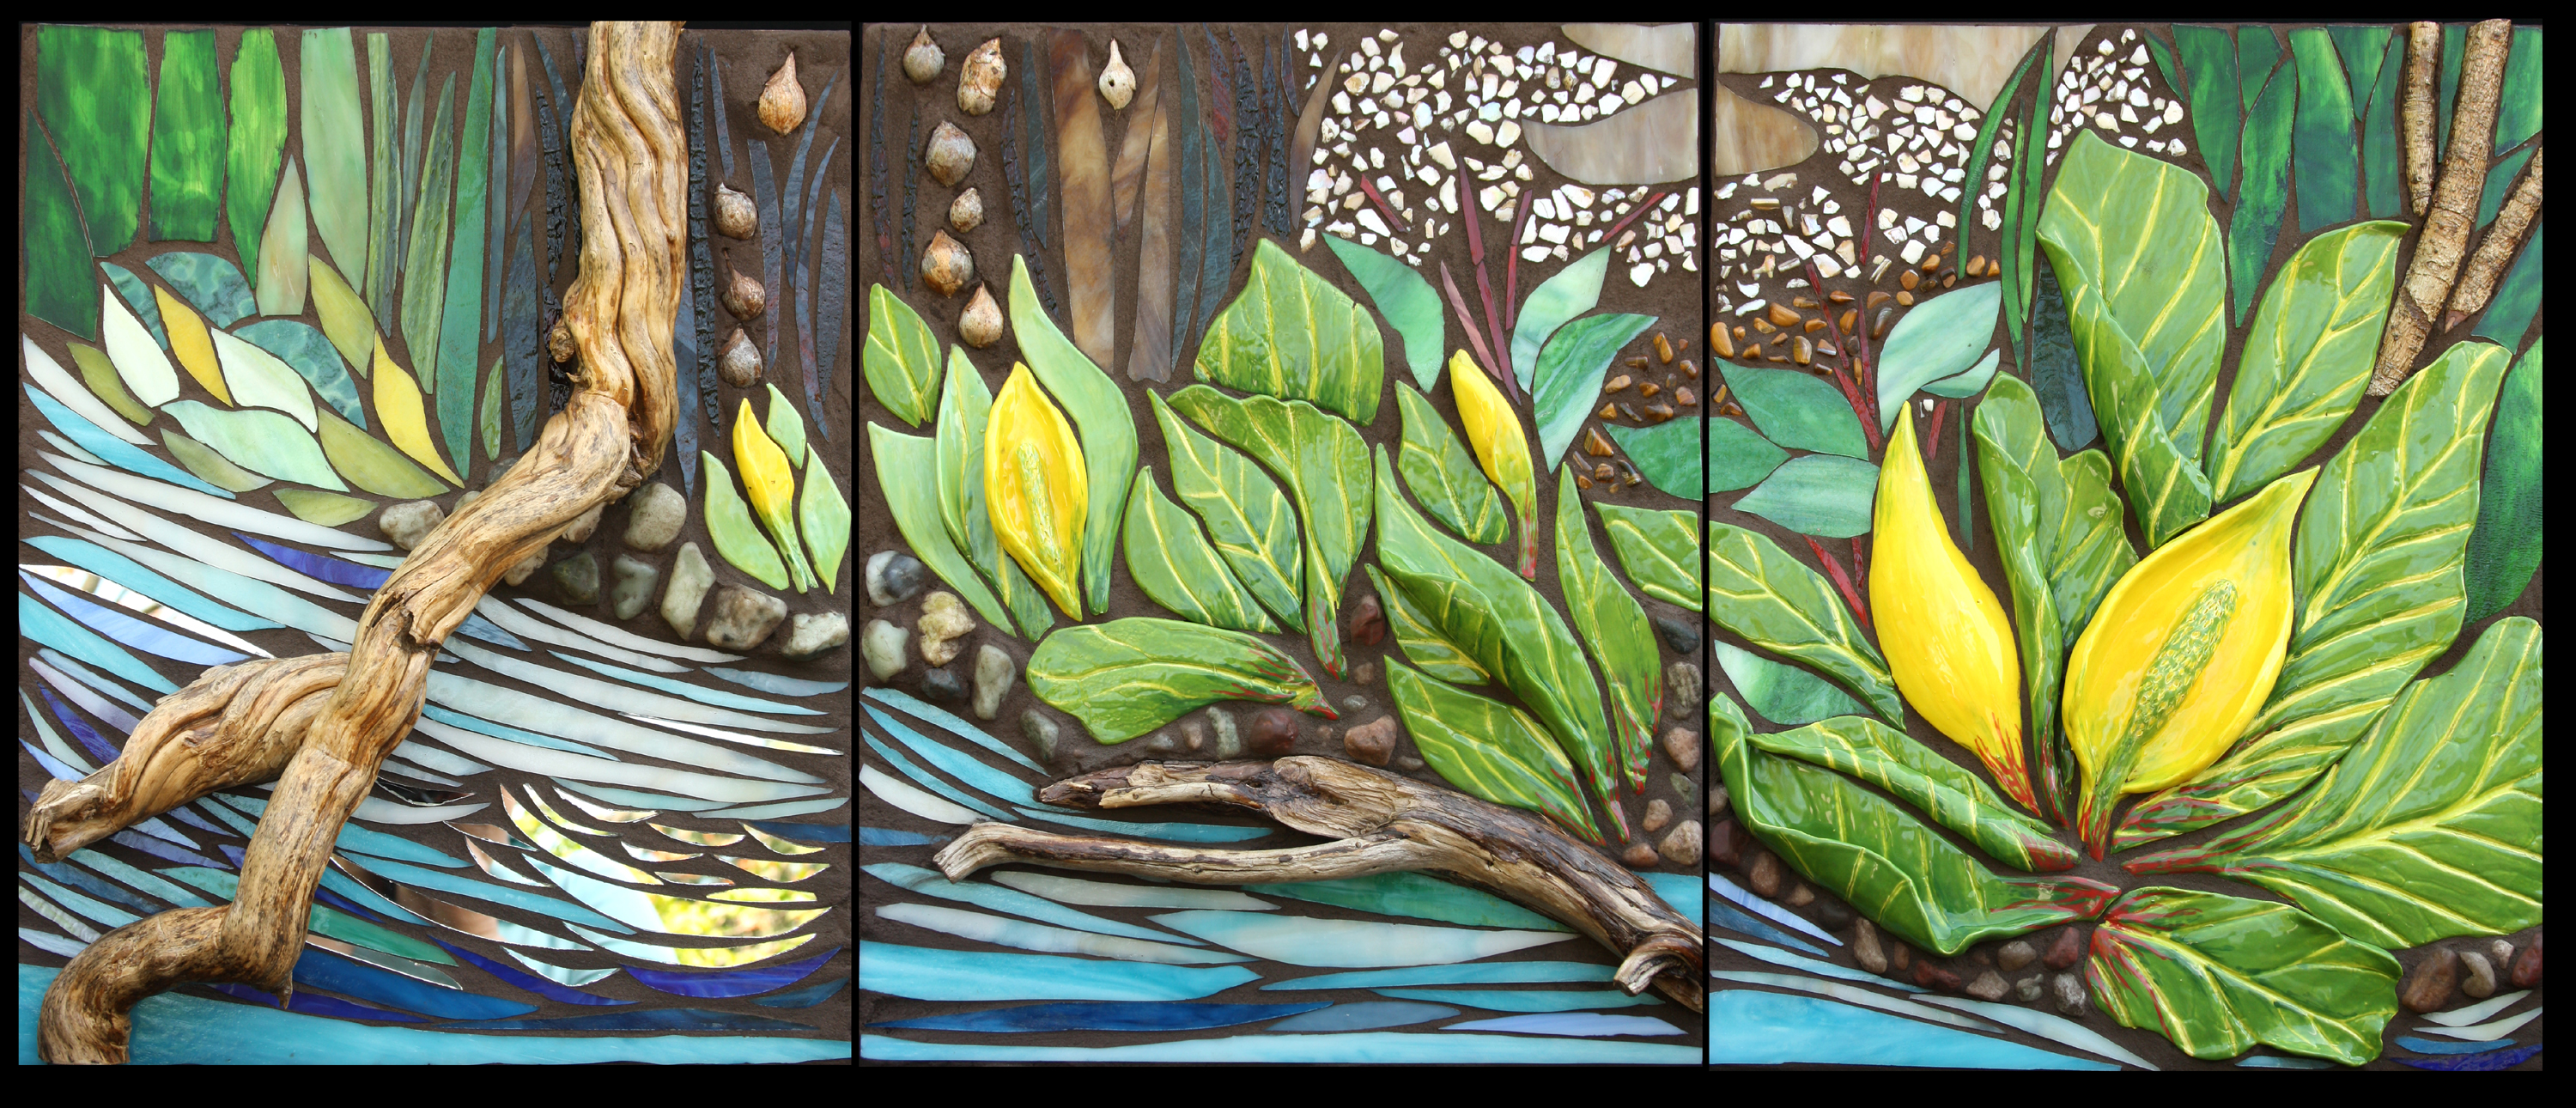 Skunk Cabbage by the Stream $2700  Sold!